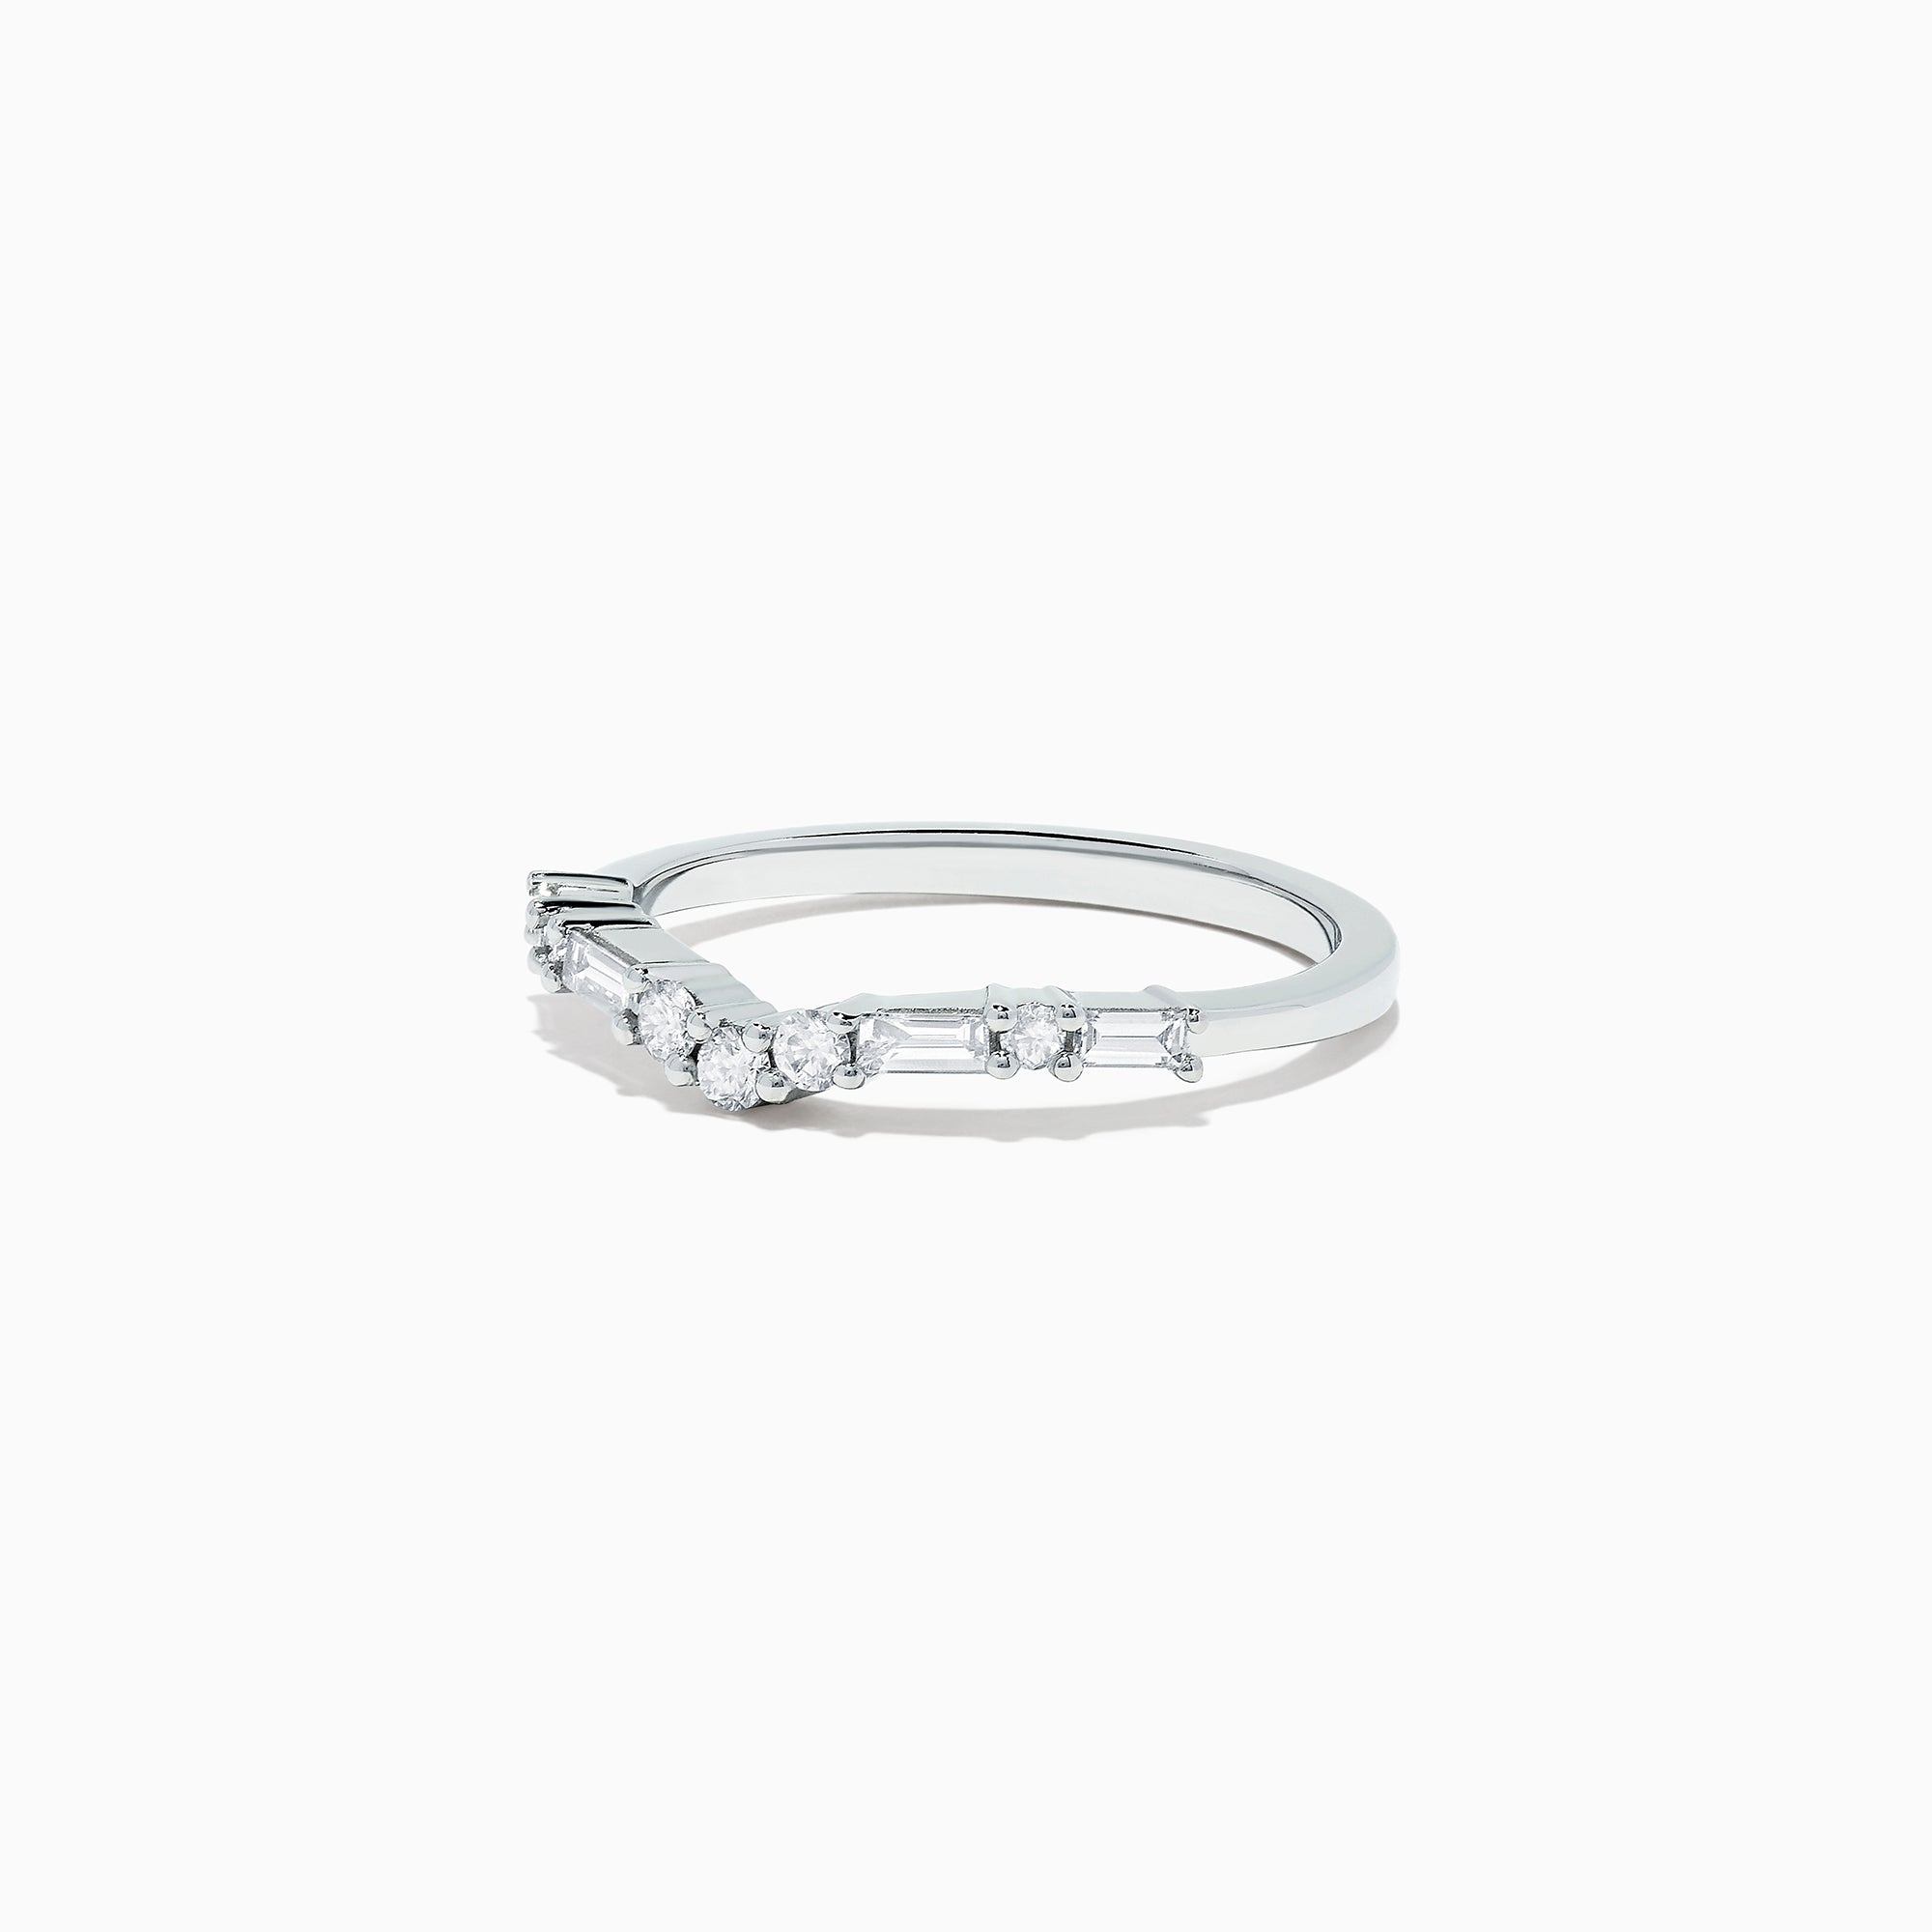 Effy Classique 14K White Gold Diamond Ring, 0.32 TCW